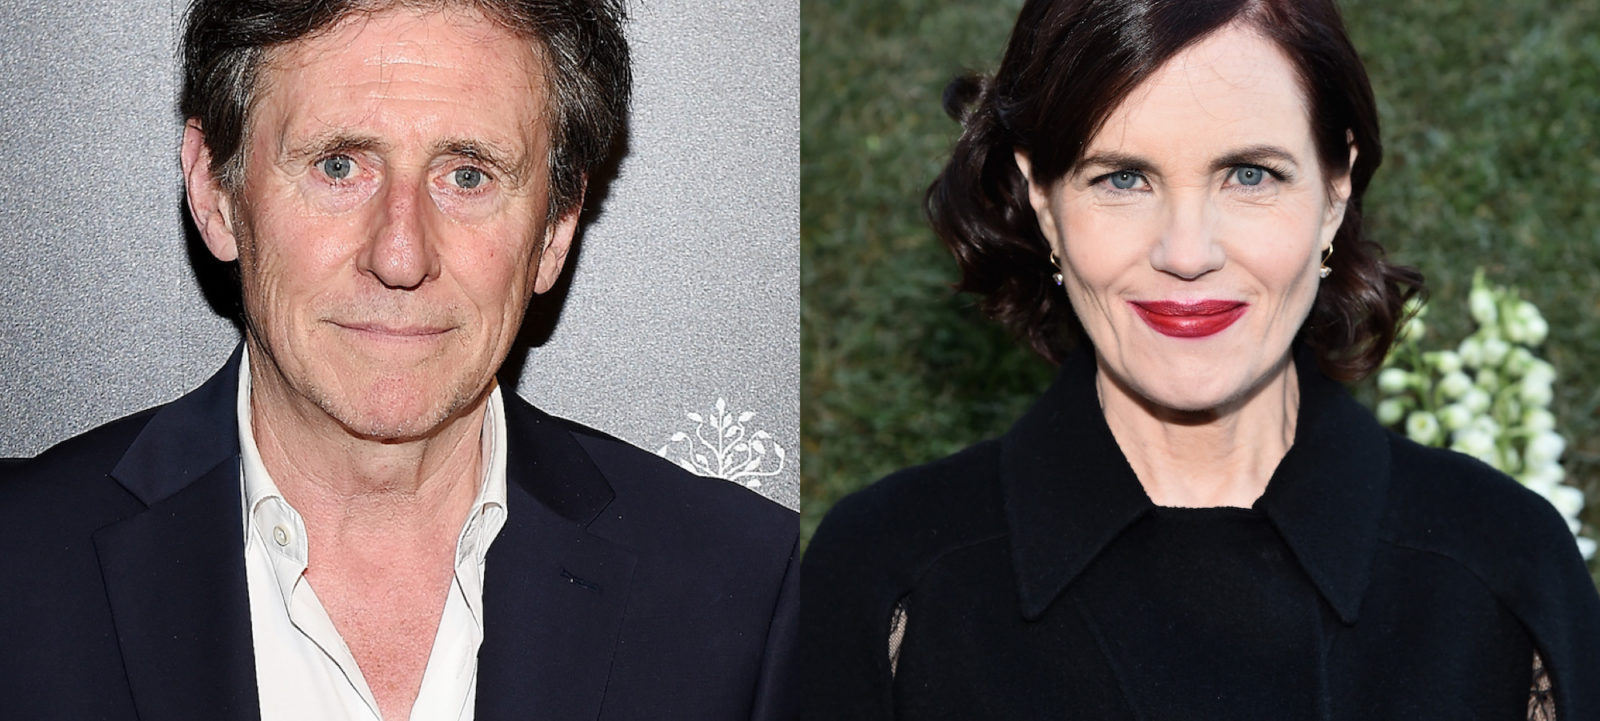 Composite image of Gabriel Byrne and Elizabeth McGovern.